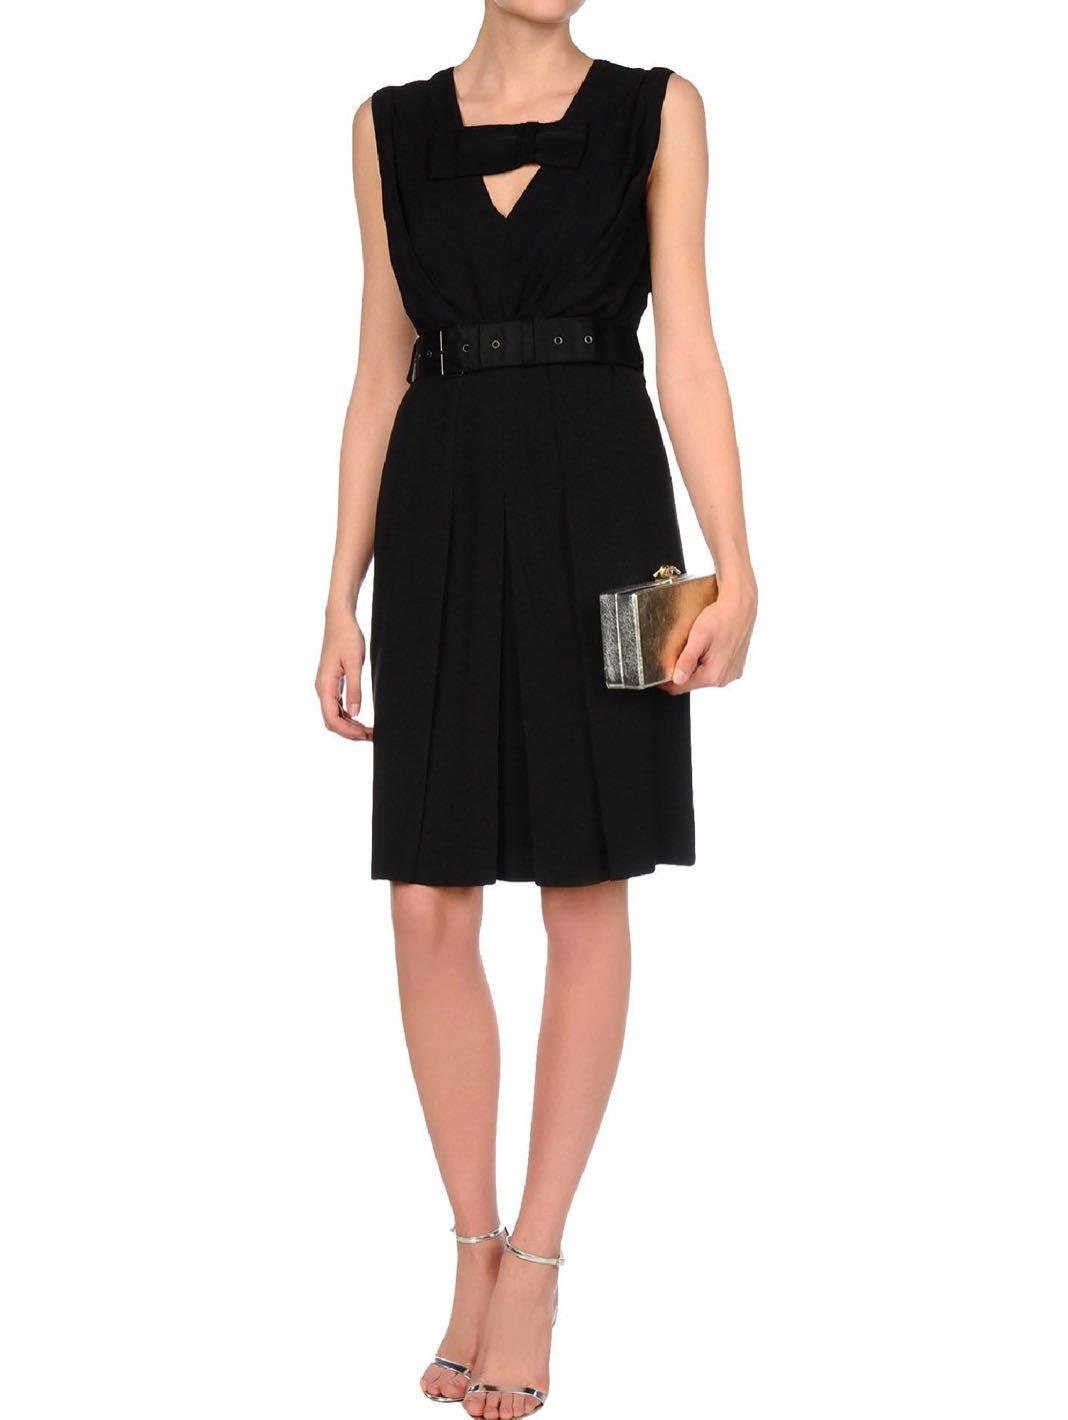 Sable Grosgrain Bow Dress - The Bobby Boga